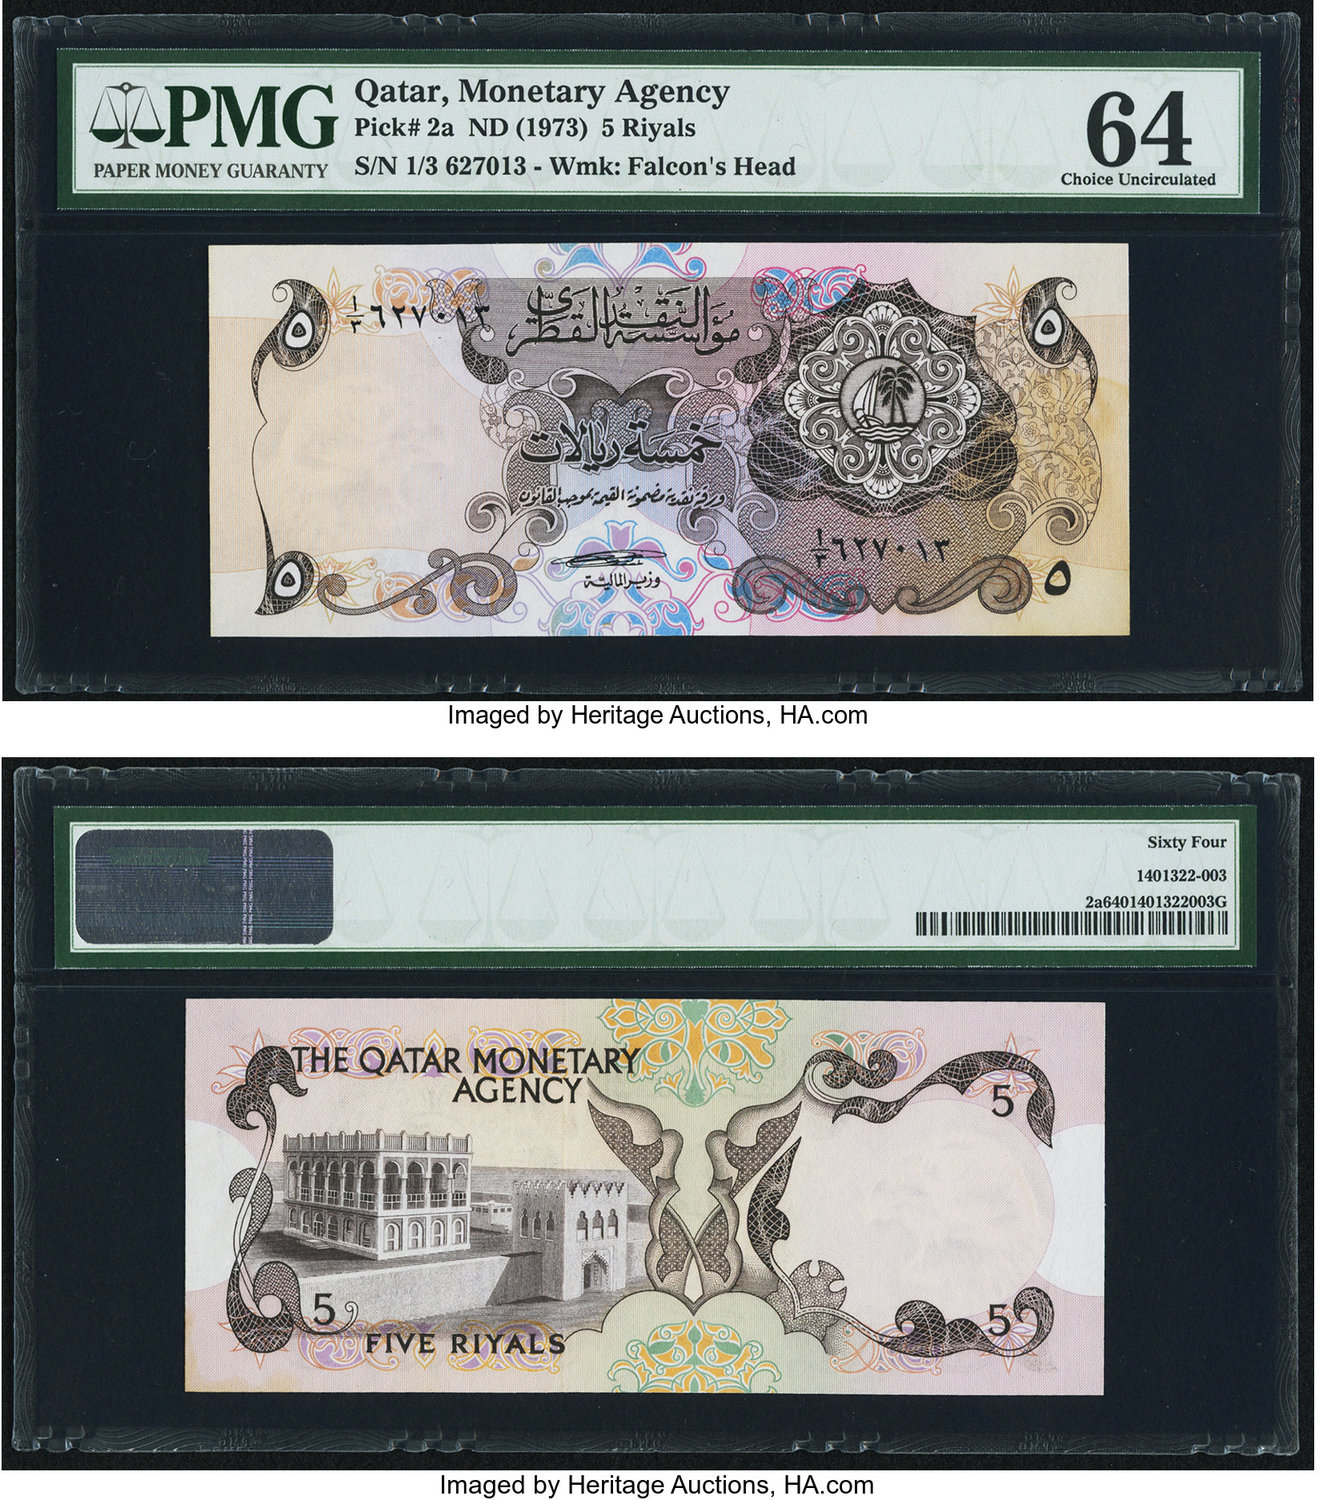 Numisbids Heritage World Coin Auctions Long Beach Signature Cash Pb 20000 Currency Qatar Monetary Agency 5 Riyals Nd 1973 Pick 2a The Note Is Second Denomination In This